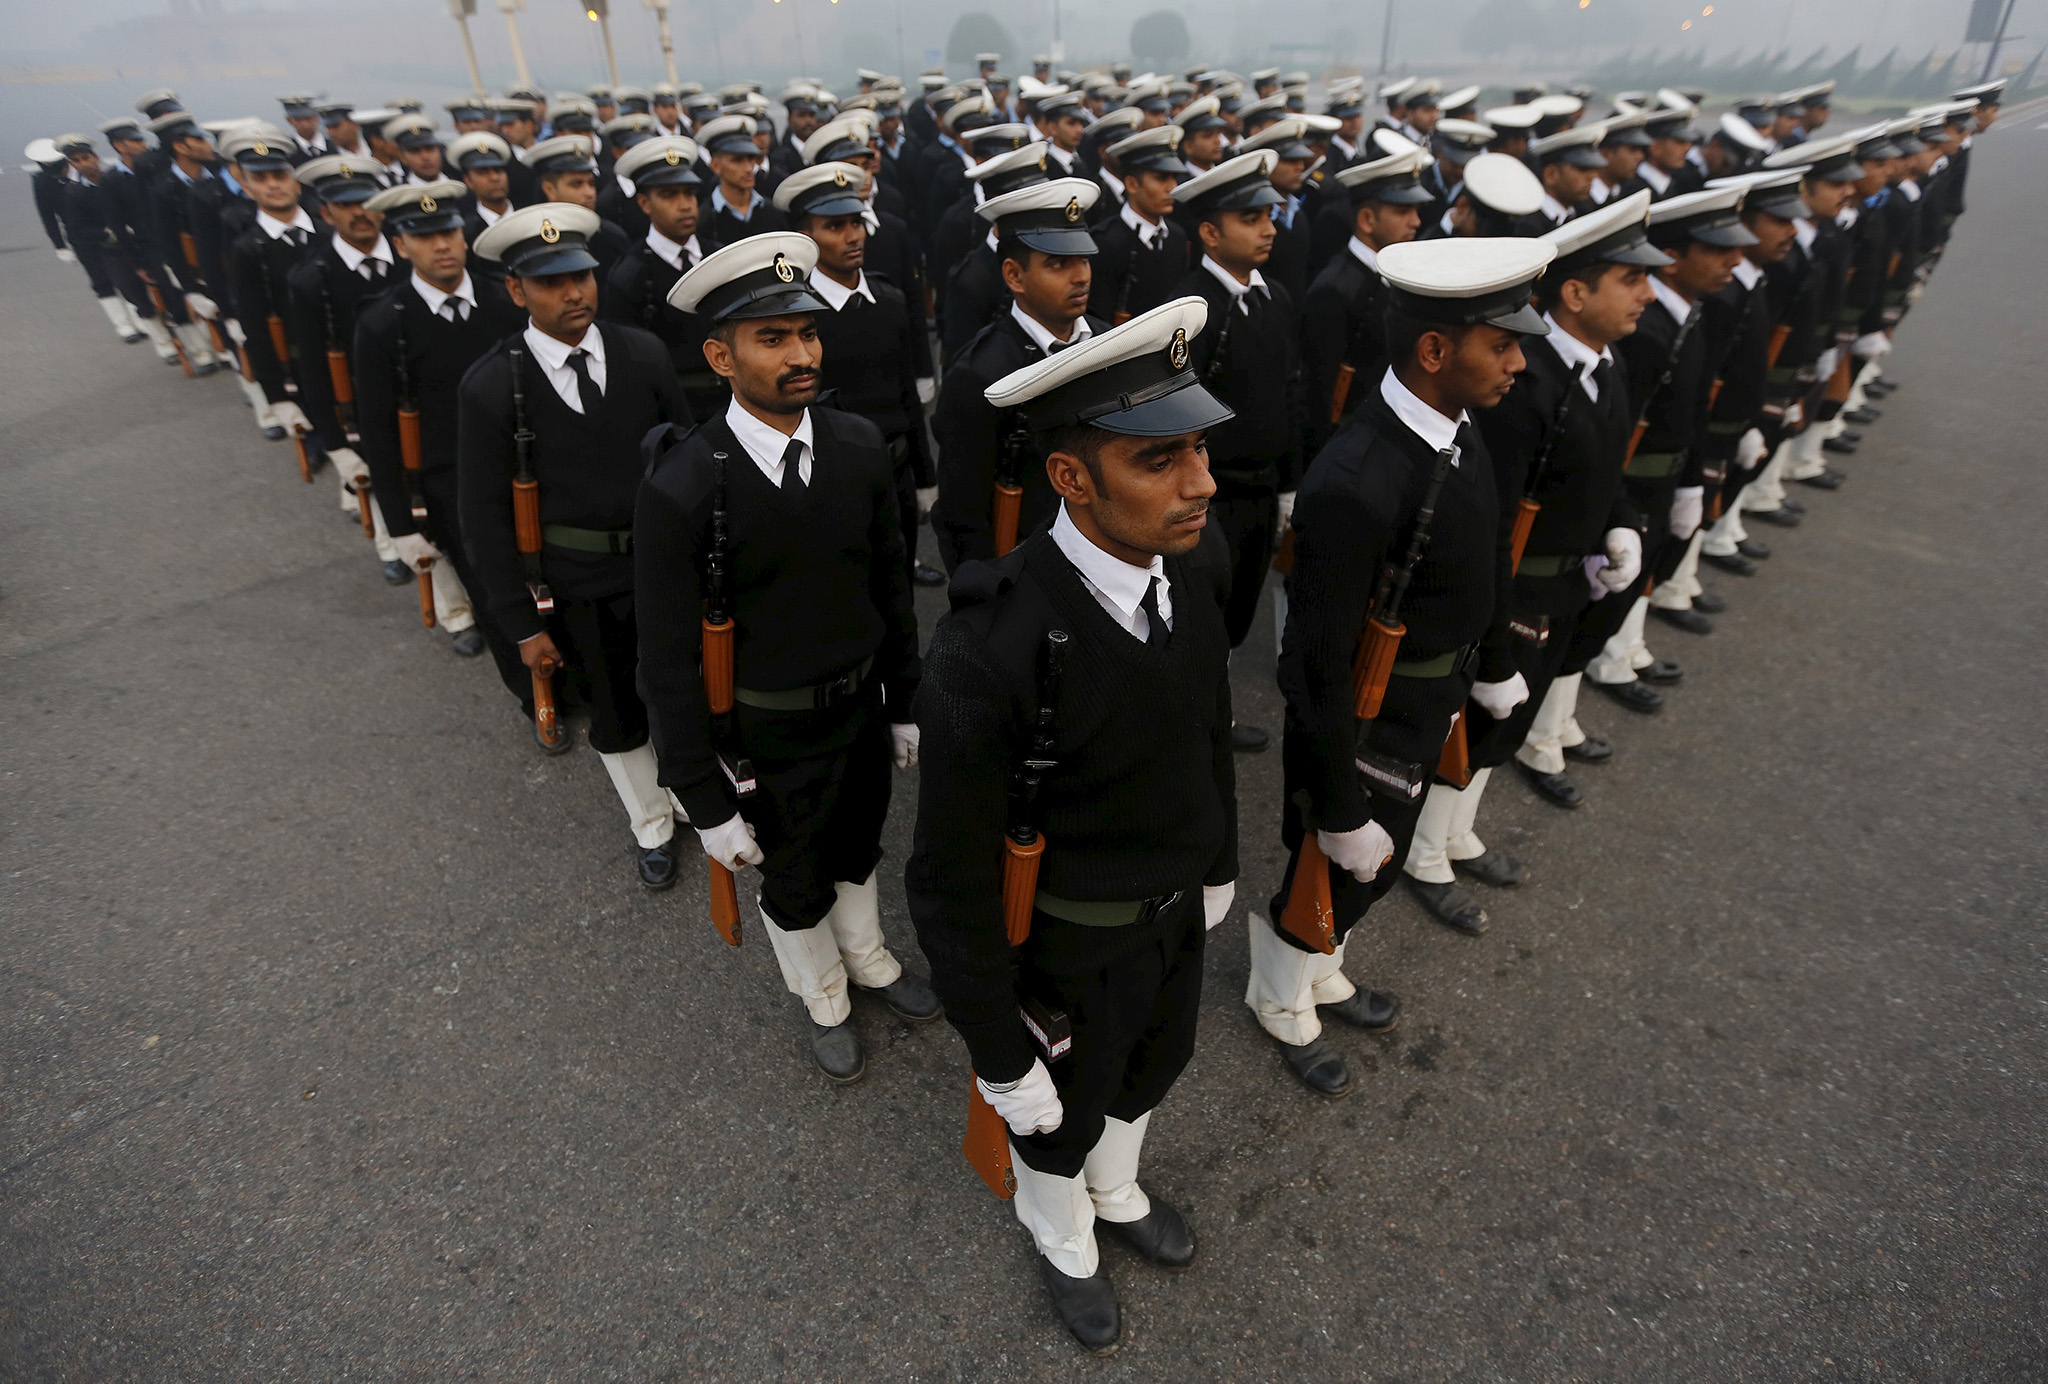 Indian soldiers take part in the rehearsal for the Republic Day parade on a foggy winter morning in New Delhi, India